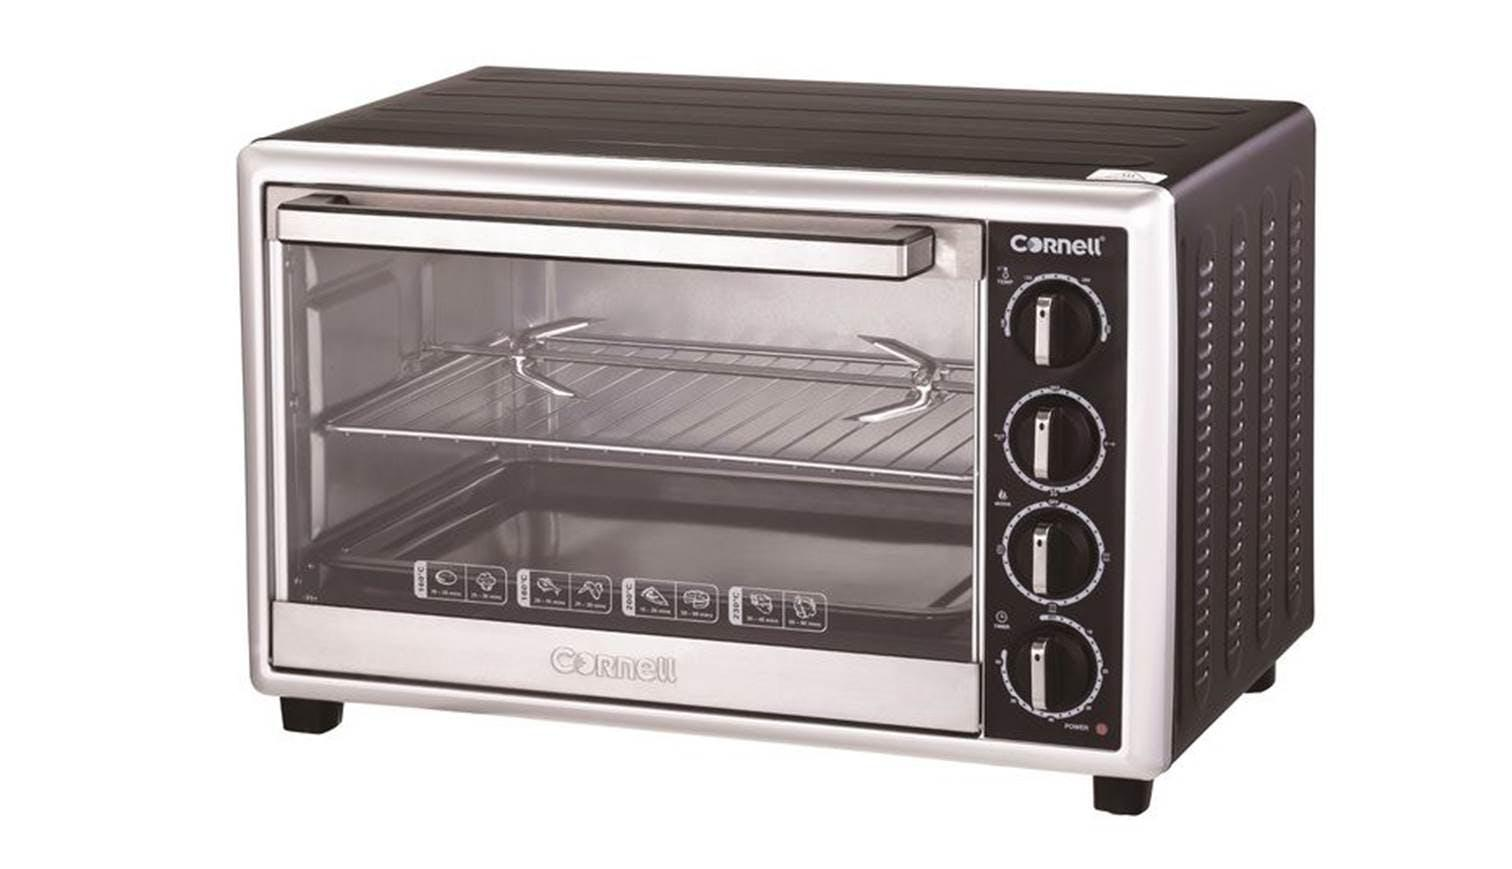 oven sasayuki today countertop oster large the tssttvxldg free shipping toaster extra convection com largest review